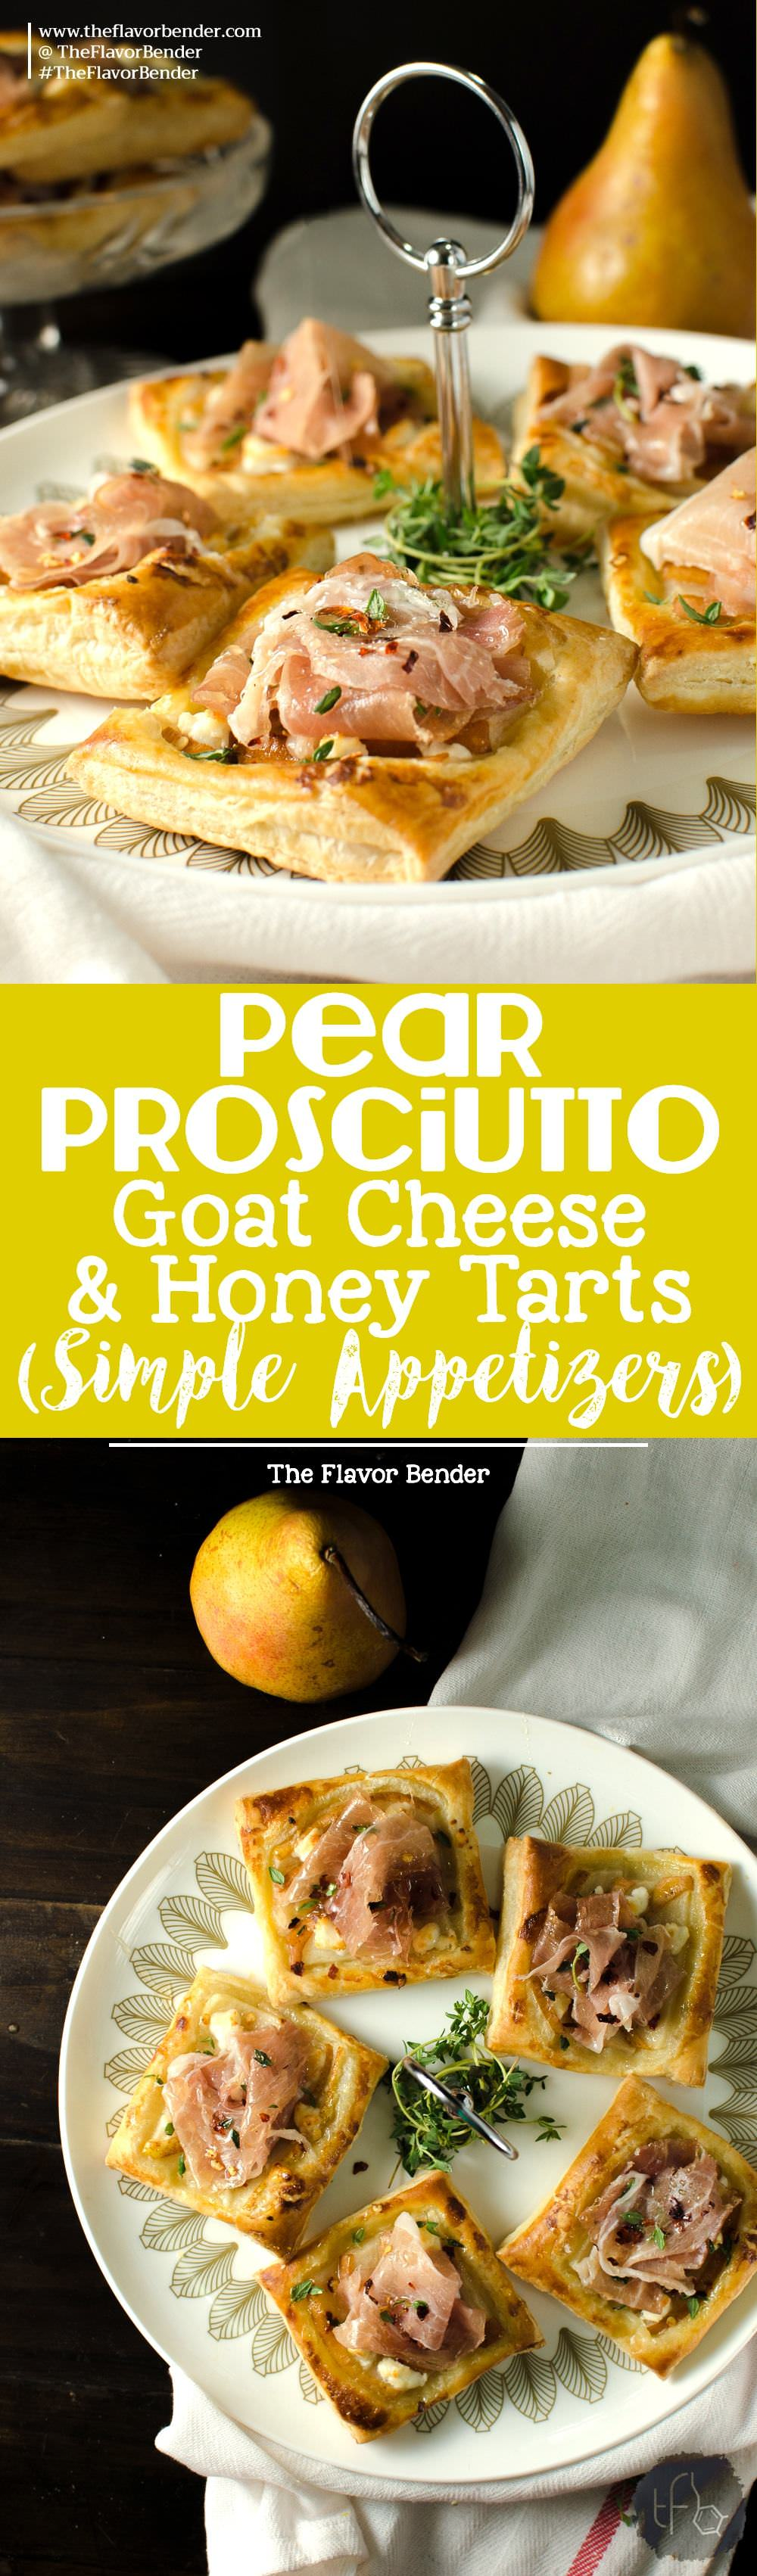 Pear, Prosciutto, Goat cheese & Honey tarts - A quick and ea..